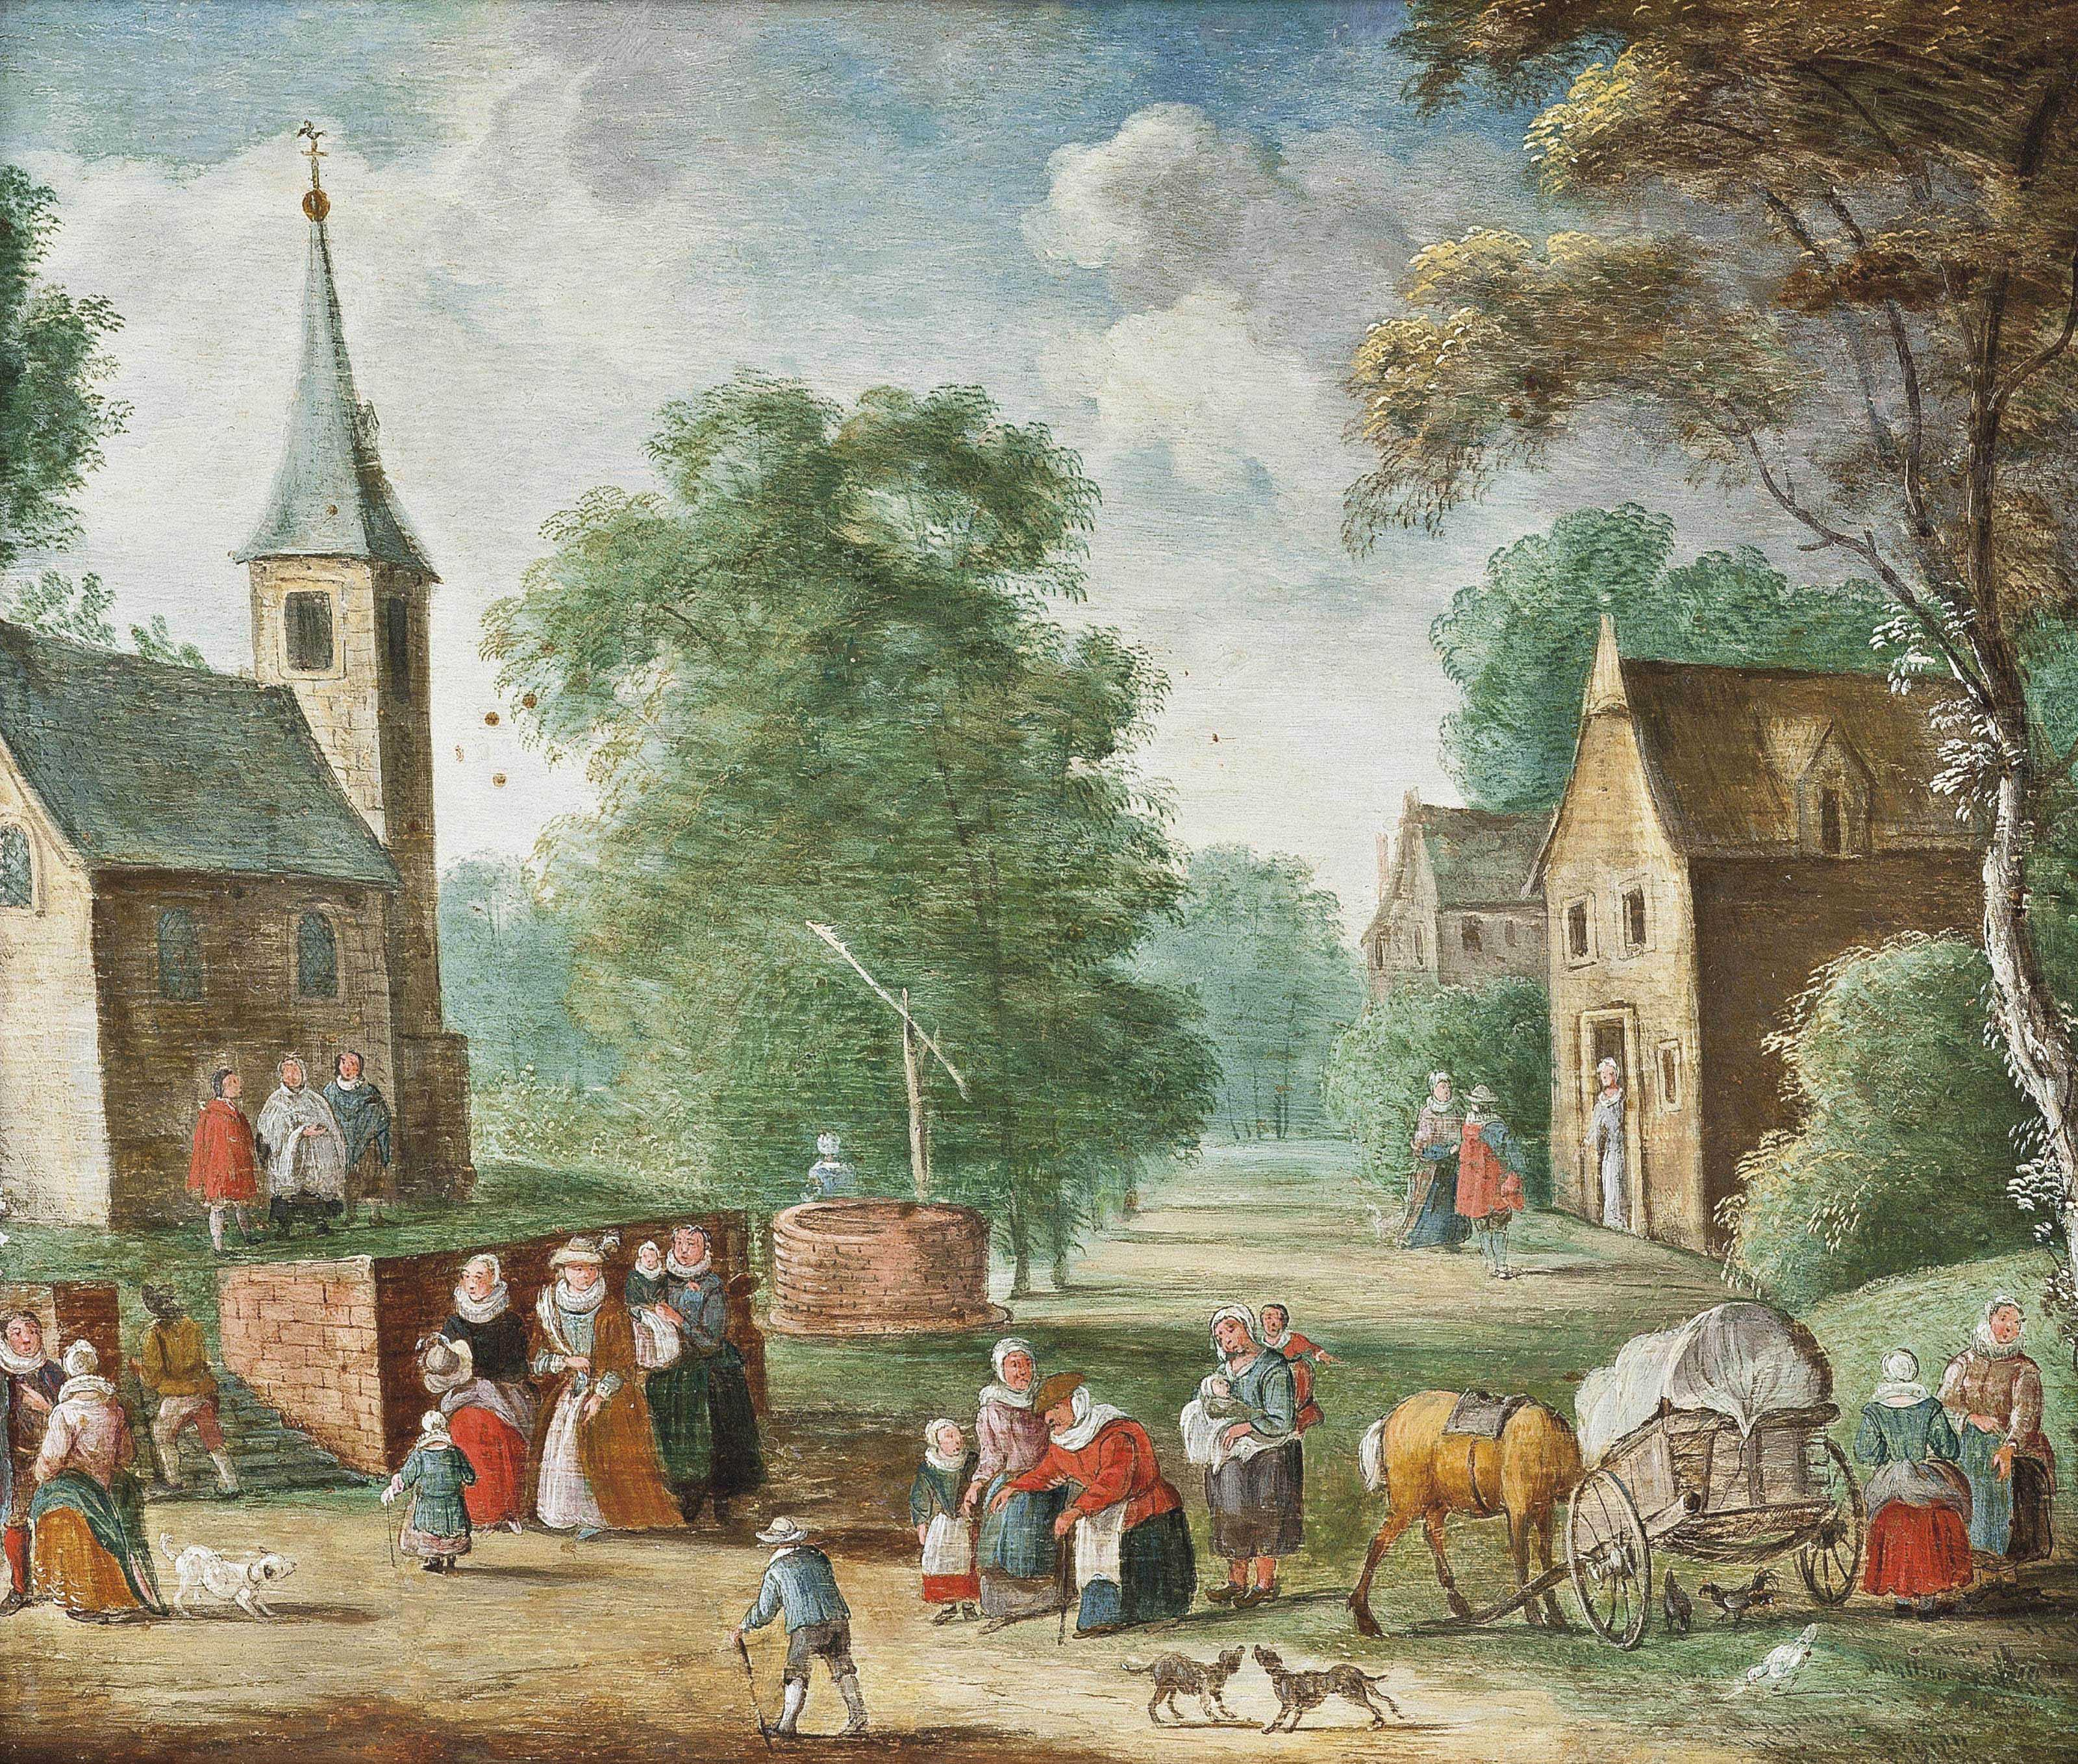 A village landscape with elegant company and peasants on a track, a church, a well and houses beyond